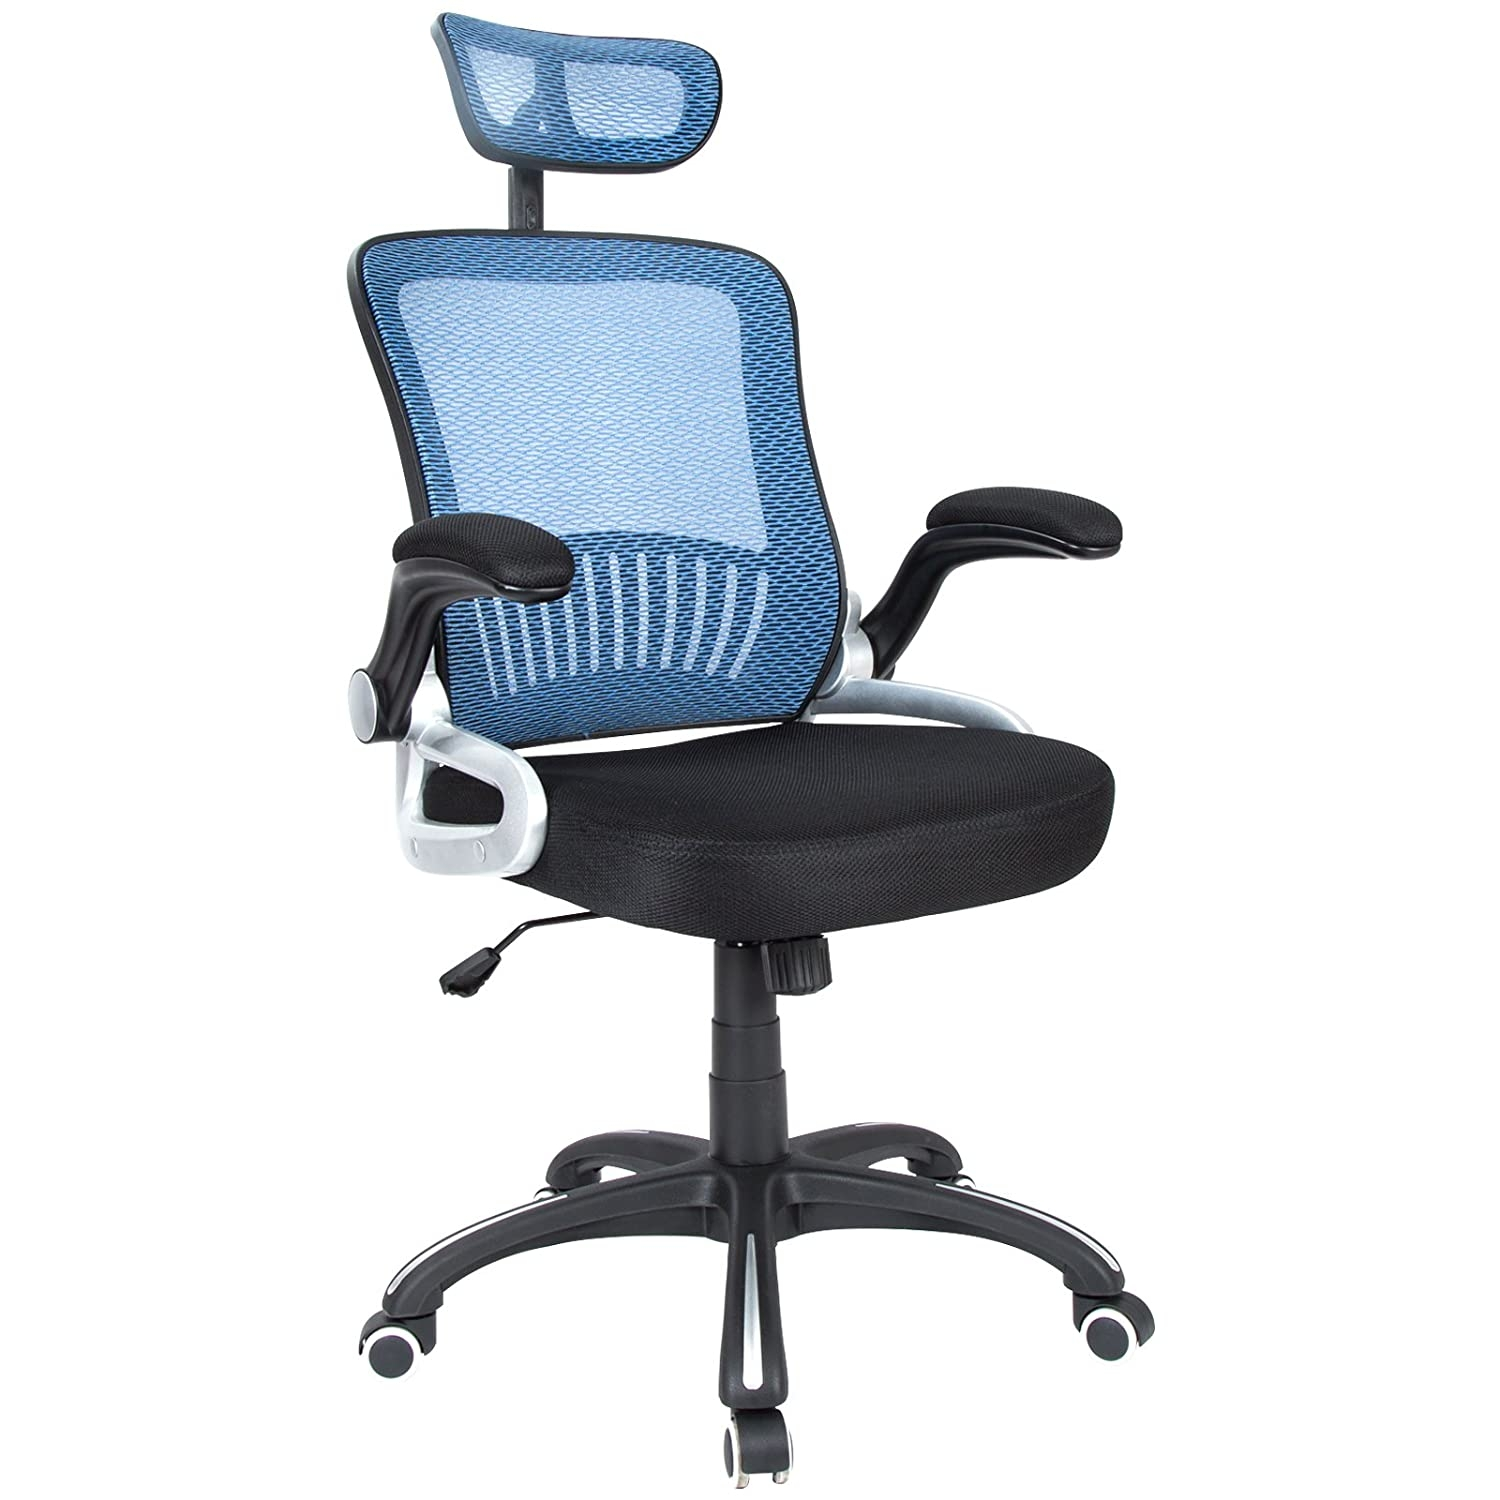 Beau Hu0026L Office High Back Blue Mesh Executive U0026 Managerial Computer Desk Swivel Office  Chair With Headrest